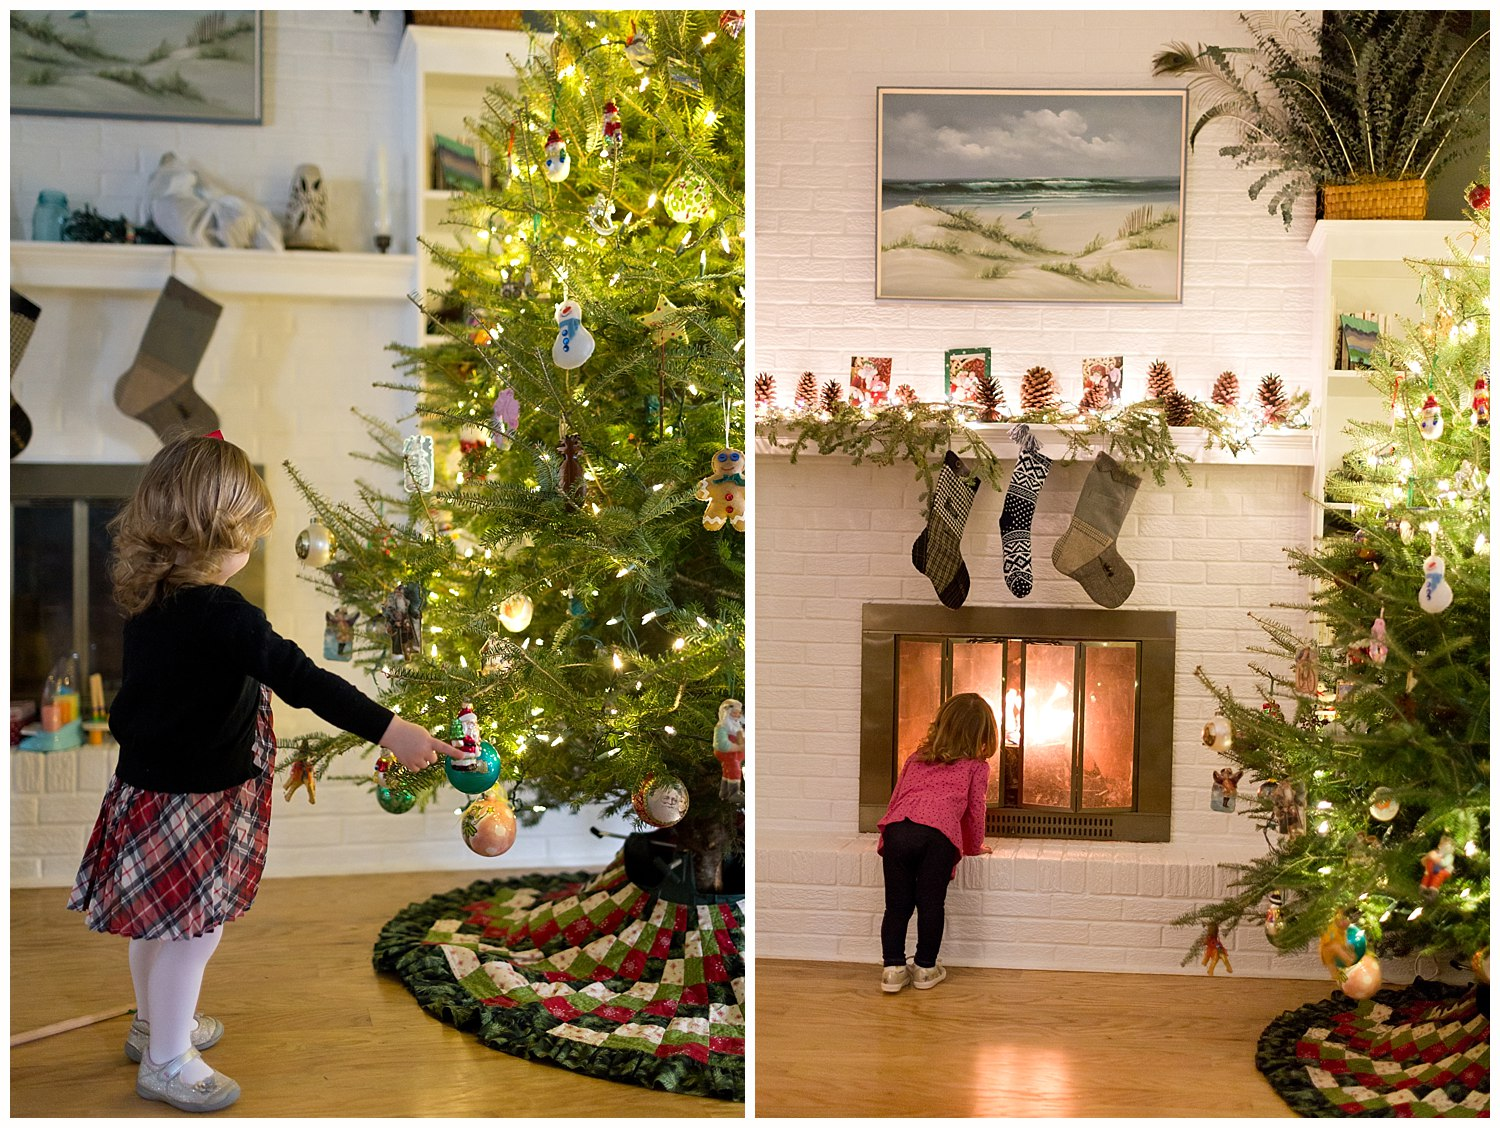 little girl with Christmas tree, fireplace, stockings, holiday decorations